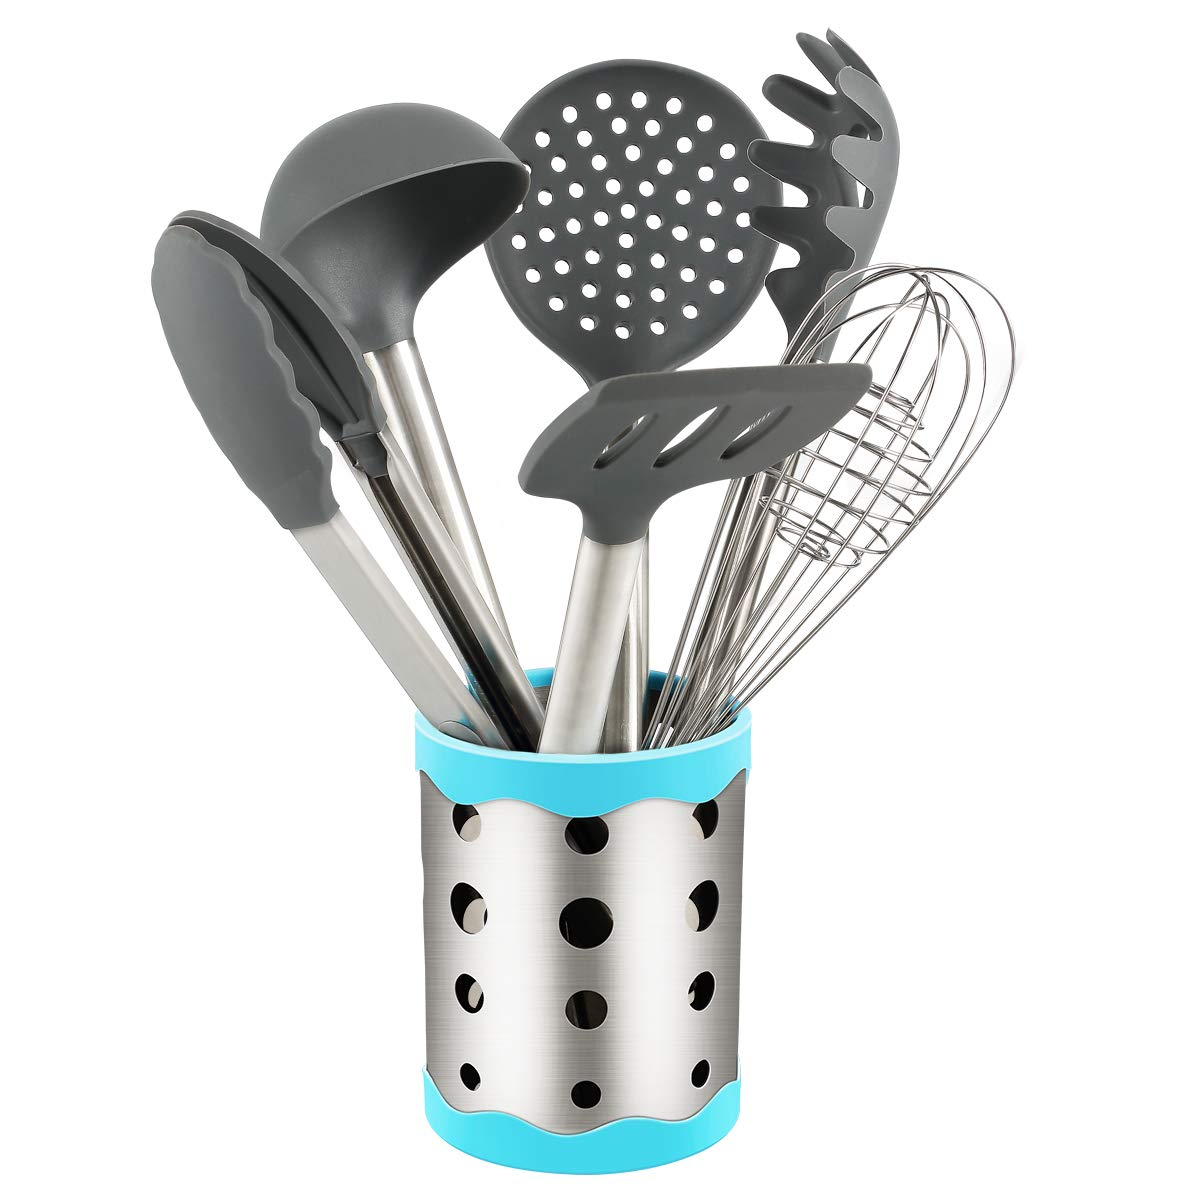 Vasdoo Silicone Kitchen Utensil Set,6 Pieces Cooking Utensil Set with Utensil Holder, Nonstick Cooking Utensil for Cookware with Stainless steel Handle,Gray